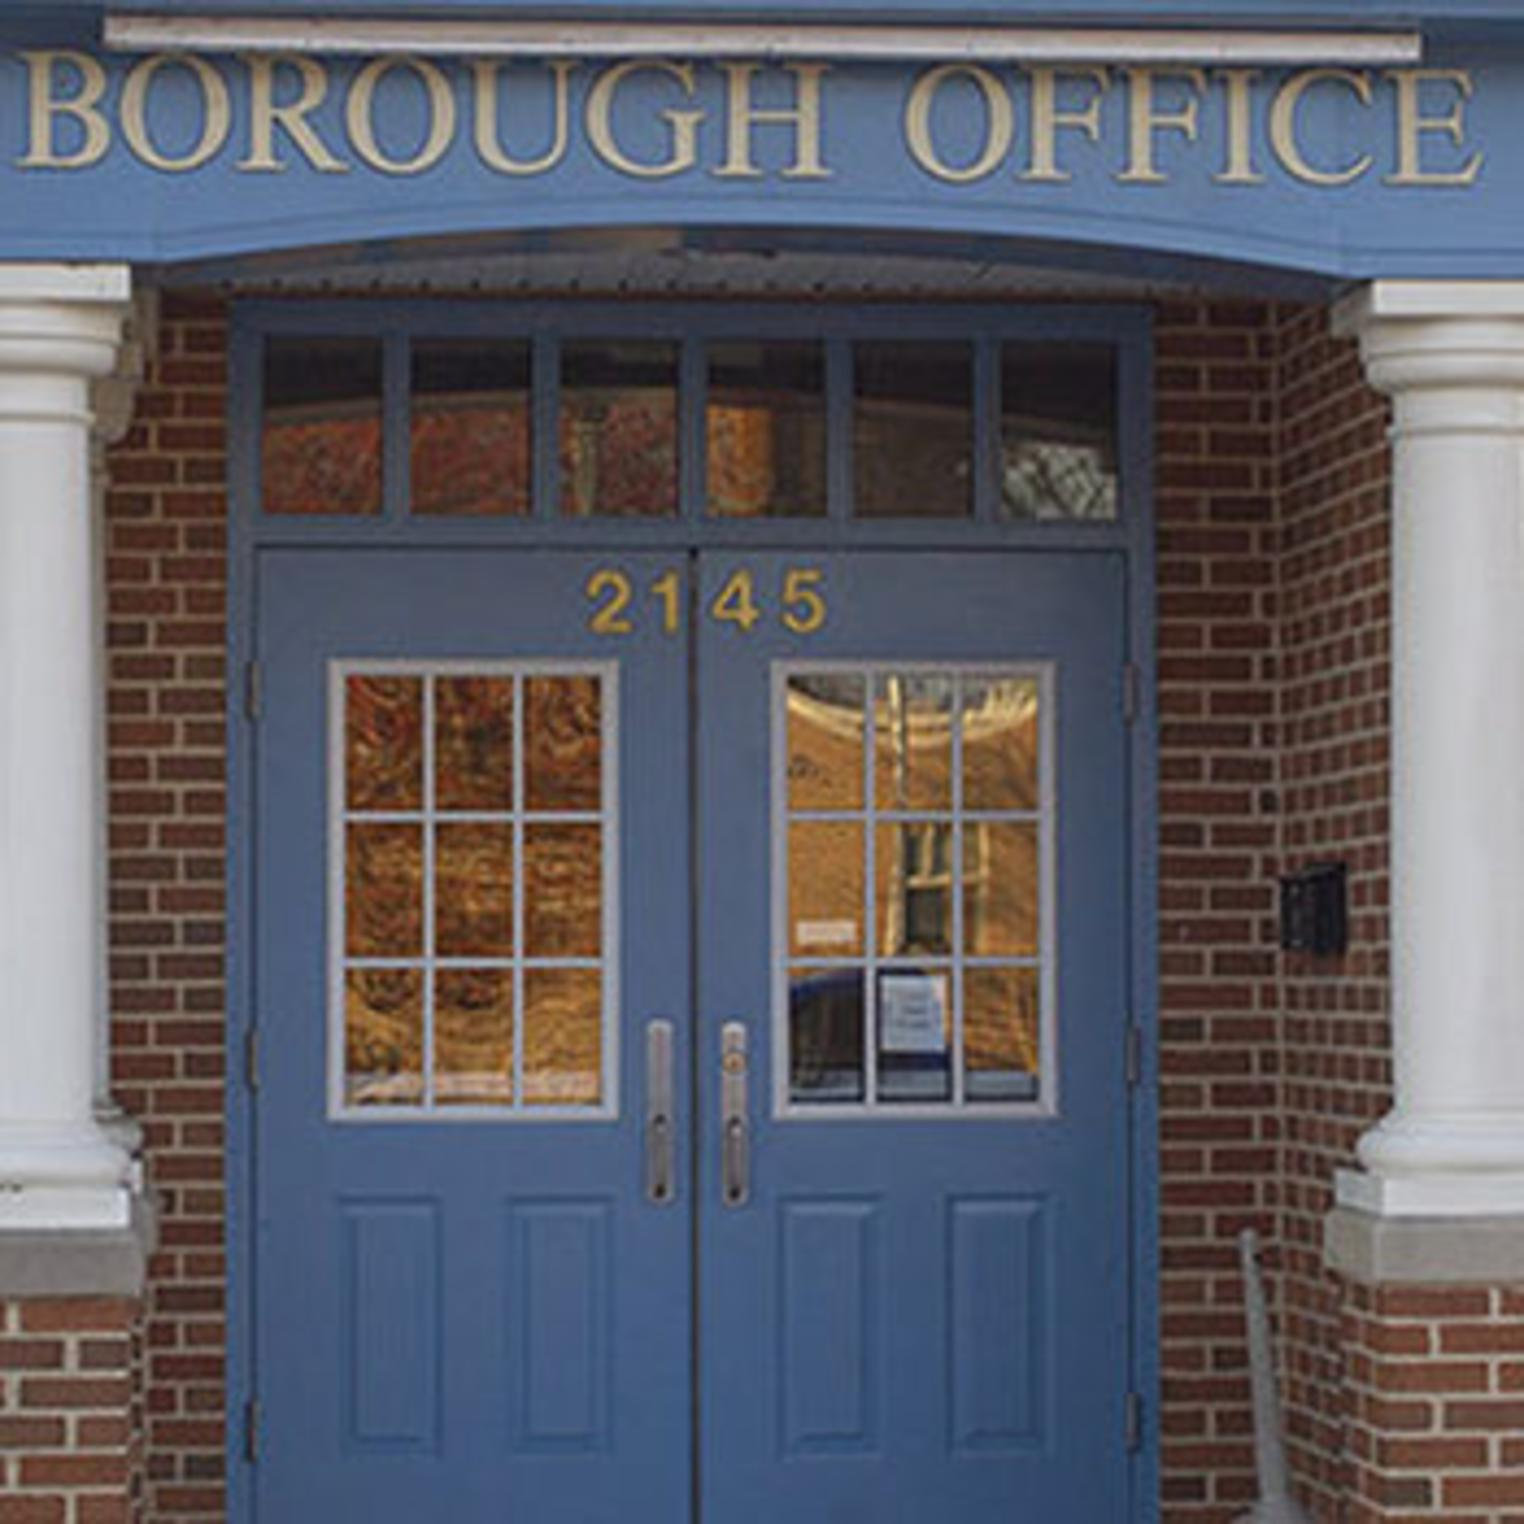 Camp Hill Borough Office